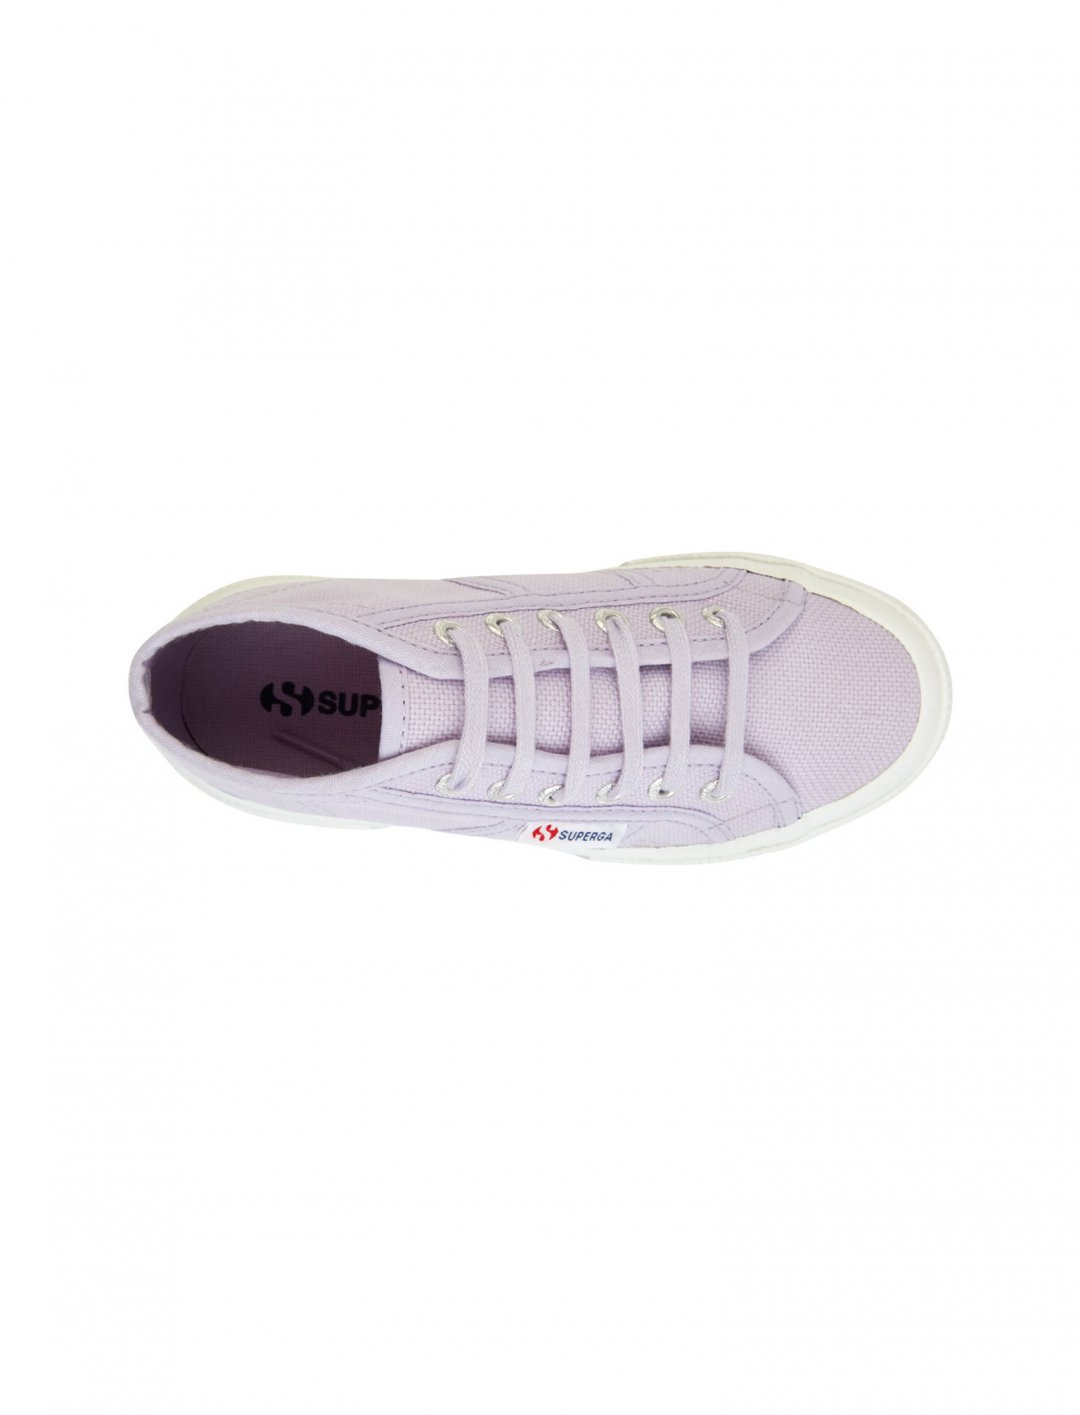 "Superga Lilac Trainers {""id"":12,""product_section_id"":1,""name"":""Shoes"",""order"":12} Superga"